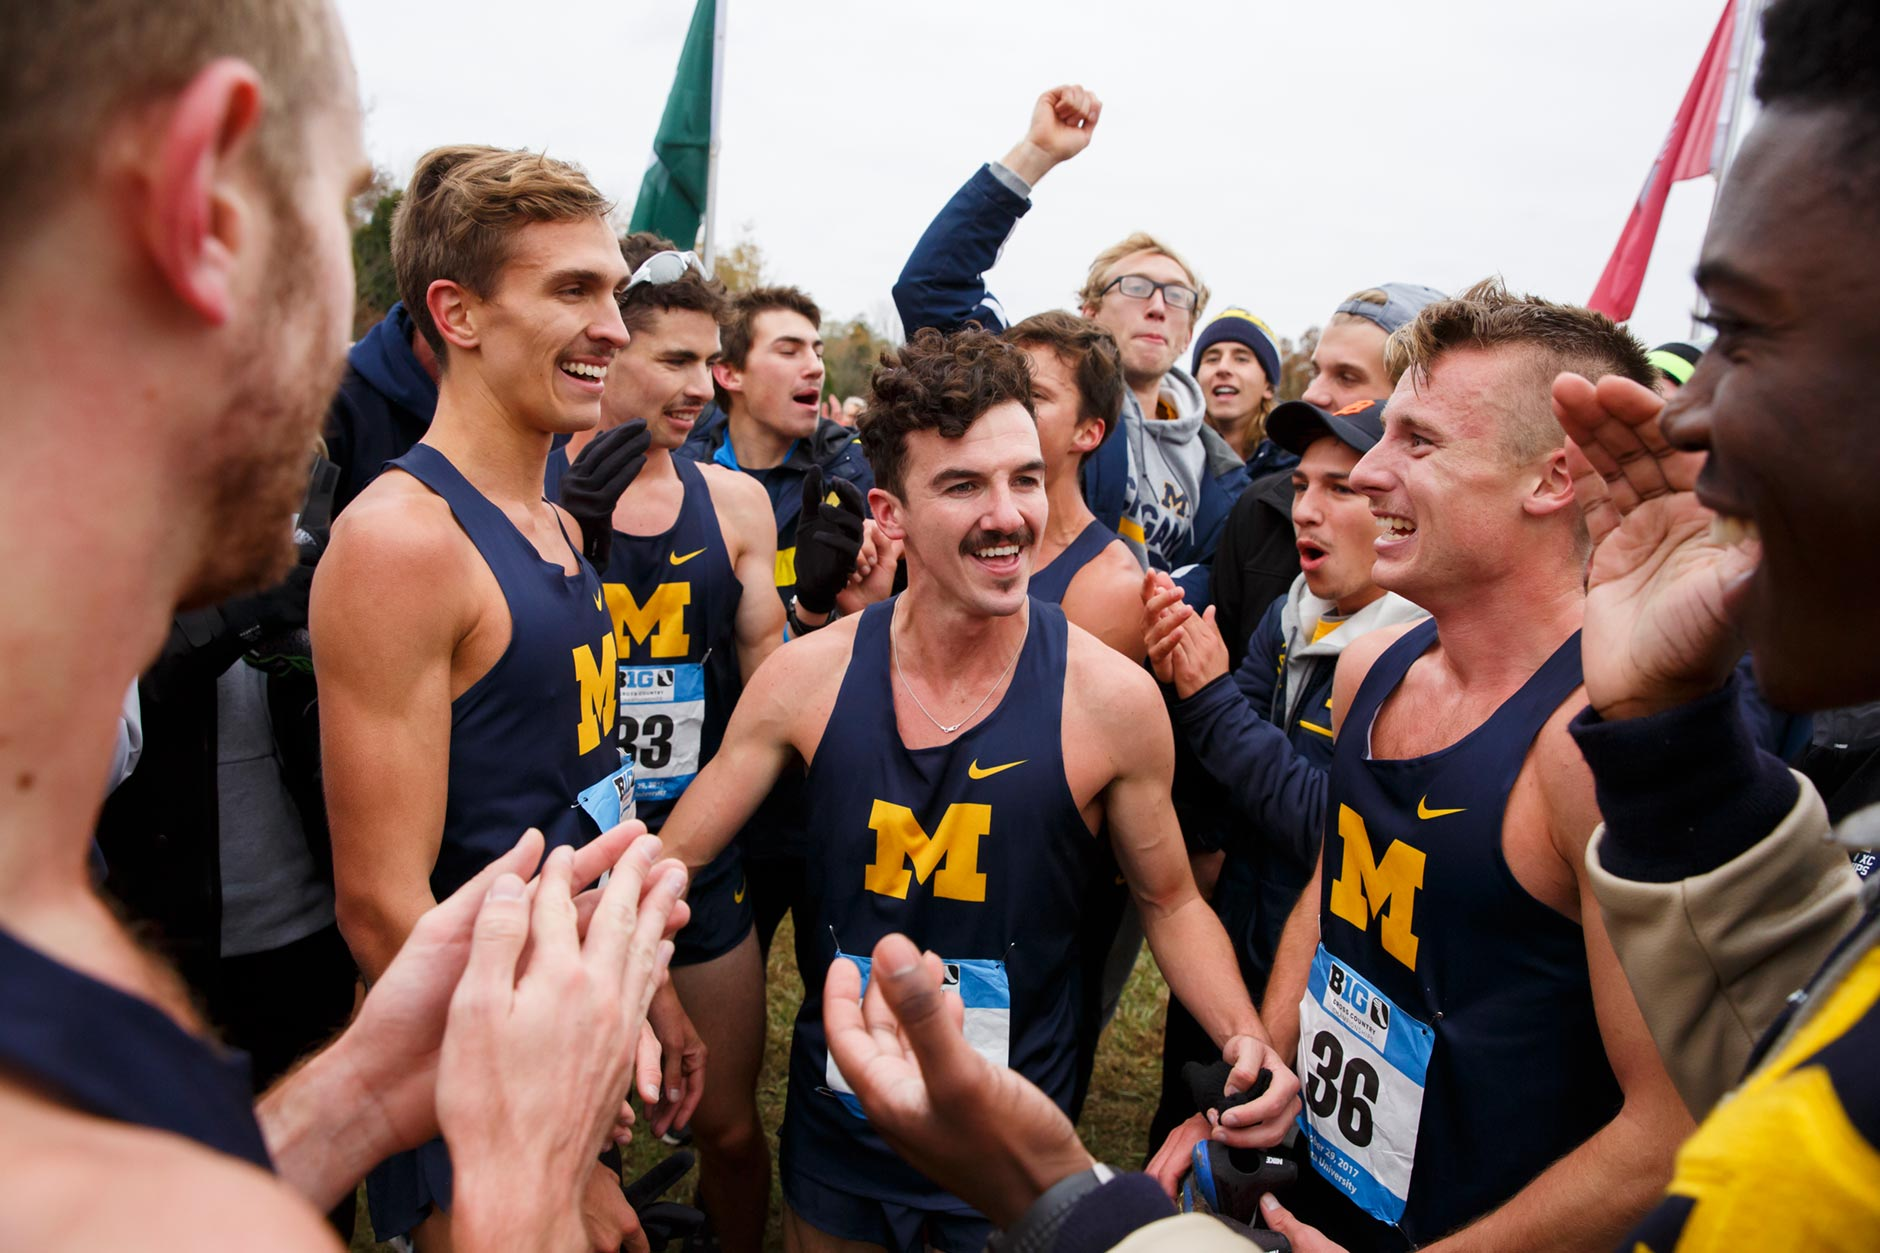 Michigan at Big Ten Cross Country Championships